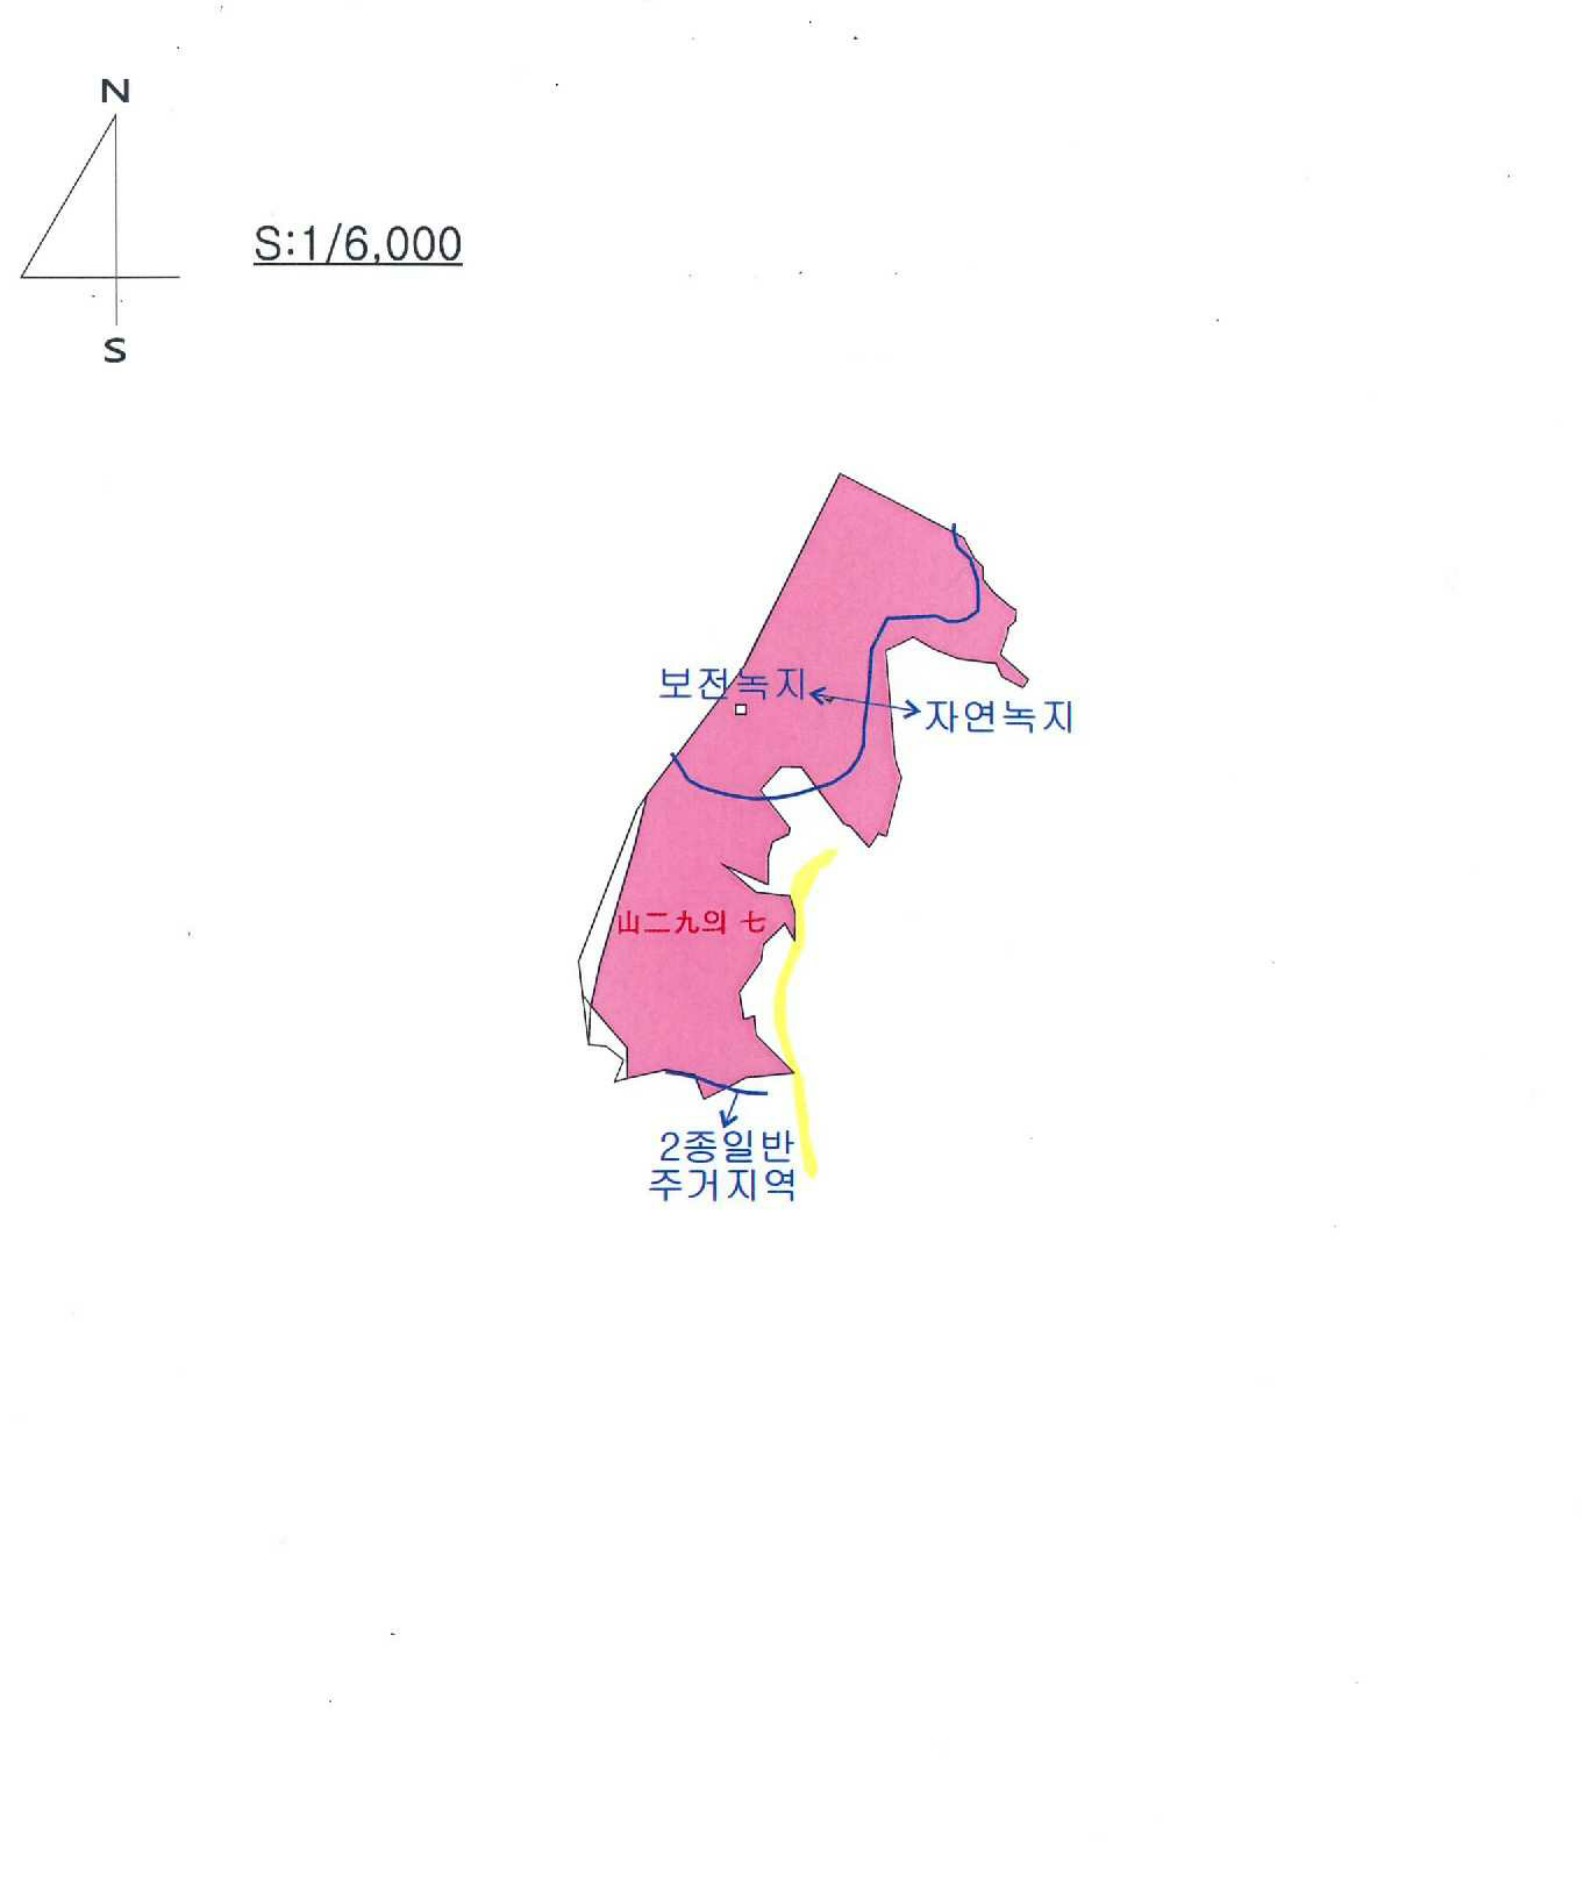 https://www.onbid.co.kr/op/common/downloadFile.do?atchFilePtcsNo=11734059&atchSeq=13